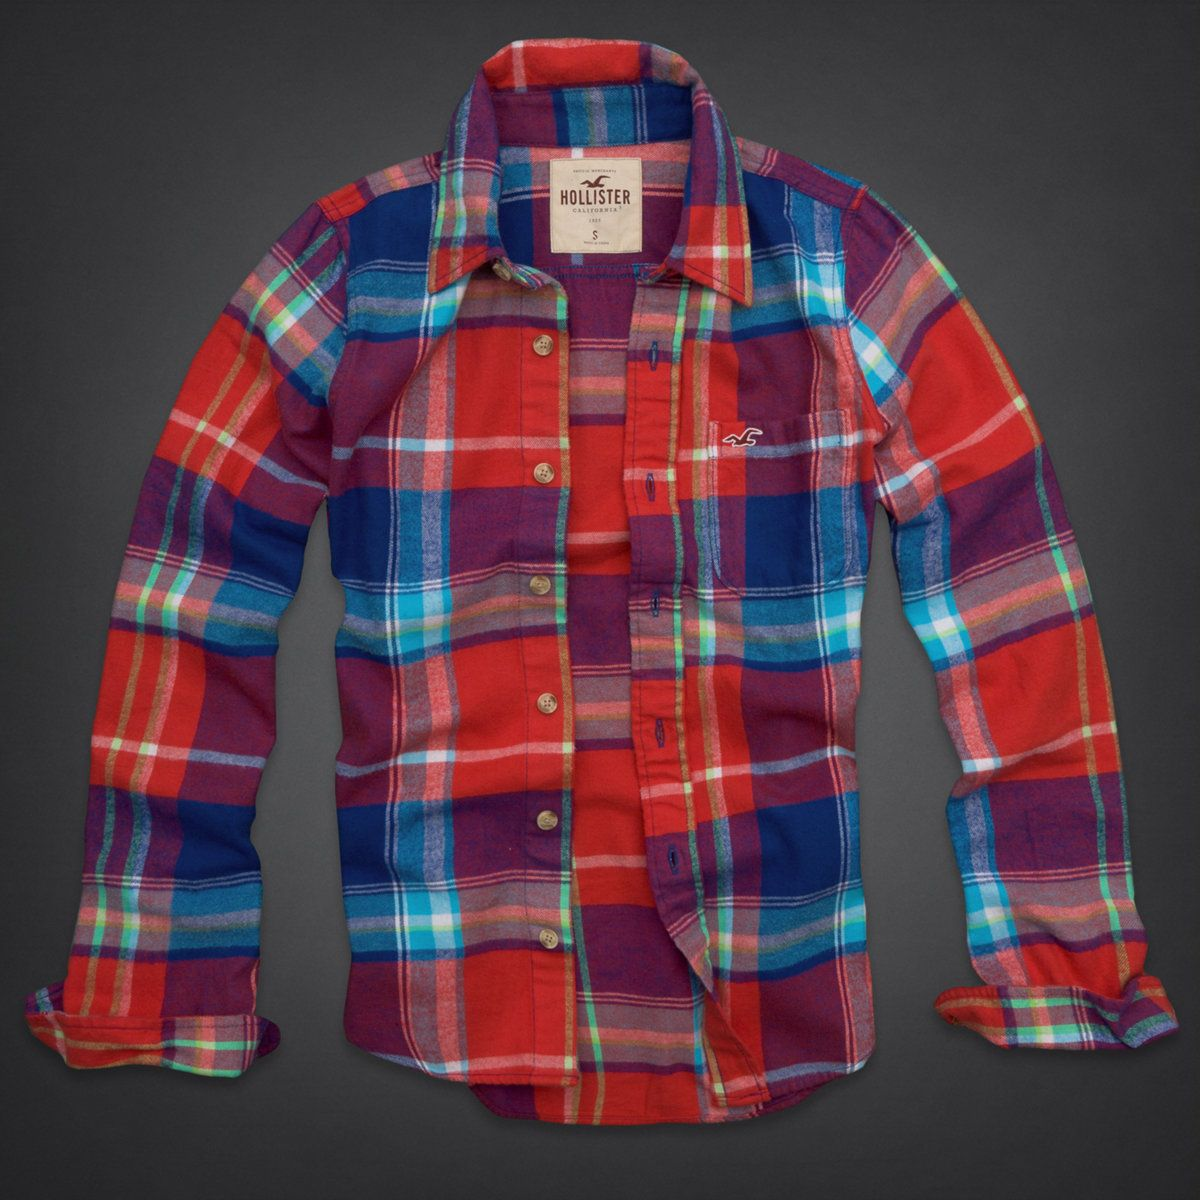 Retro flannel shirts  Hollywood Beach Flannel Shirt  Hollister  Pinterest  Hollywood